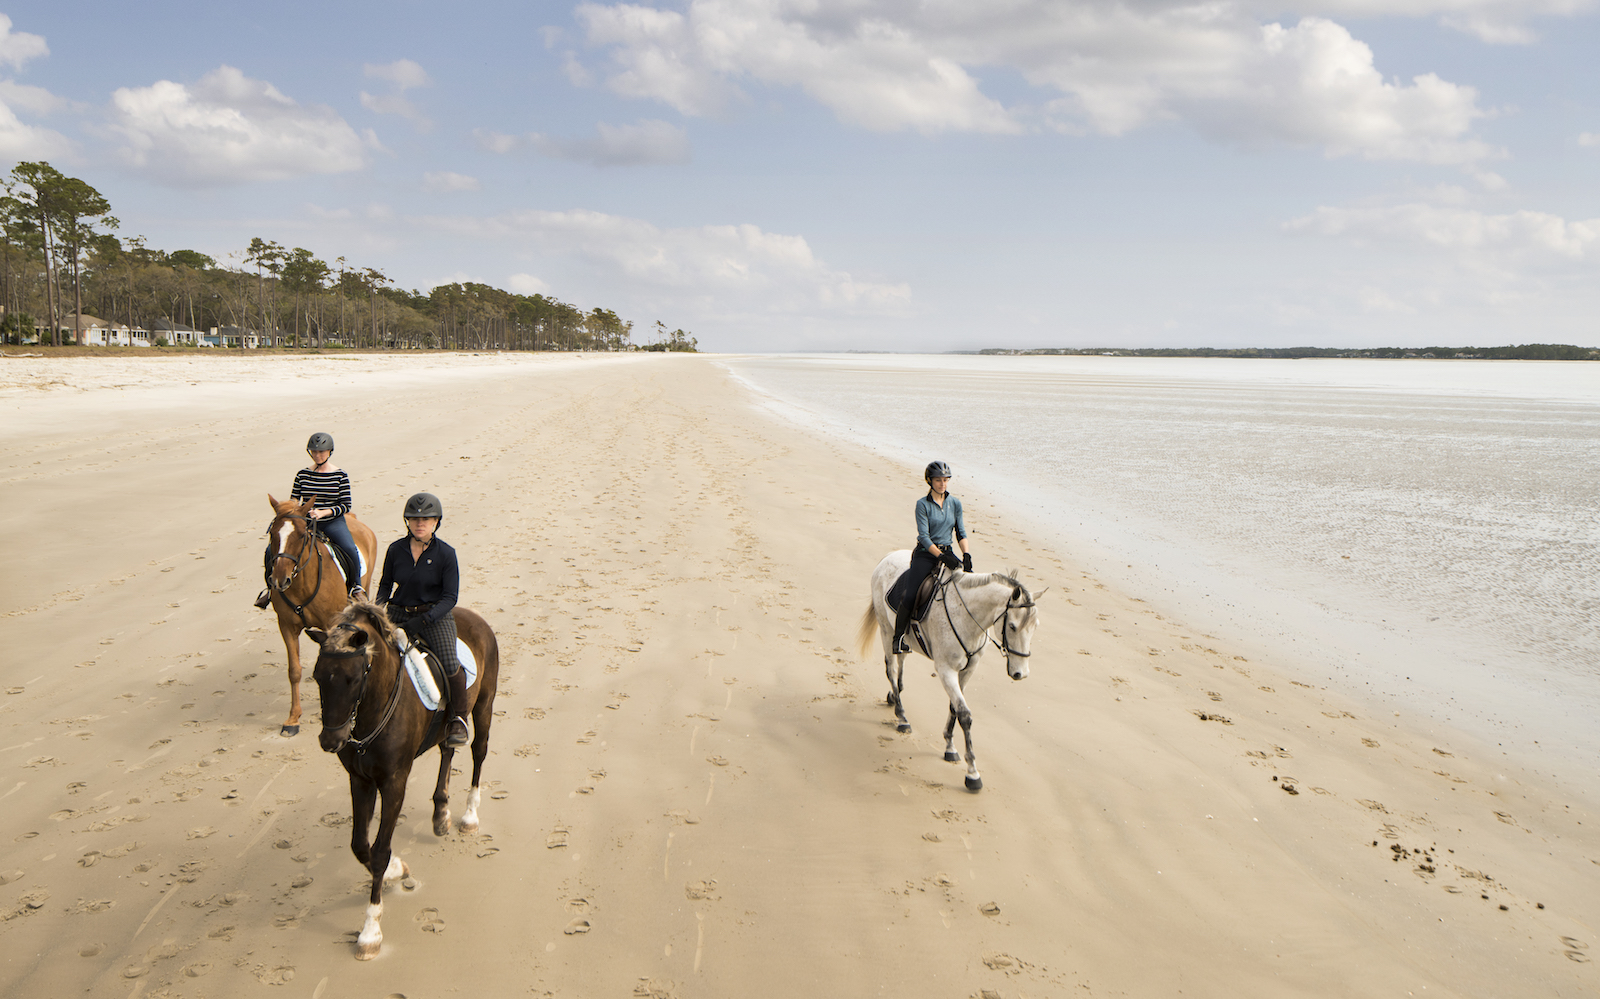 Haig Point Daufuskie horseback riding on the beach